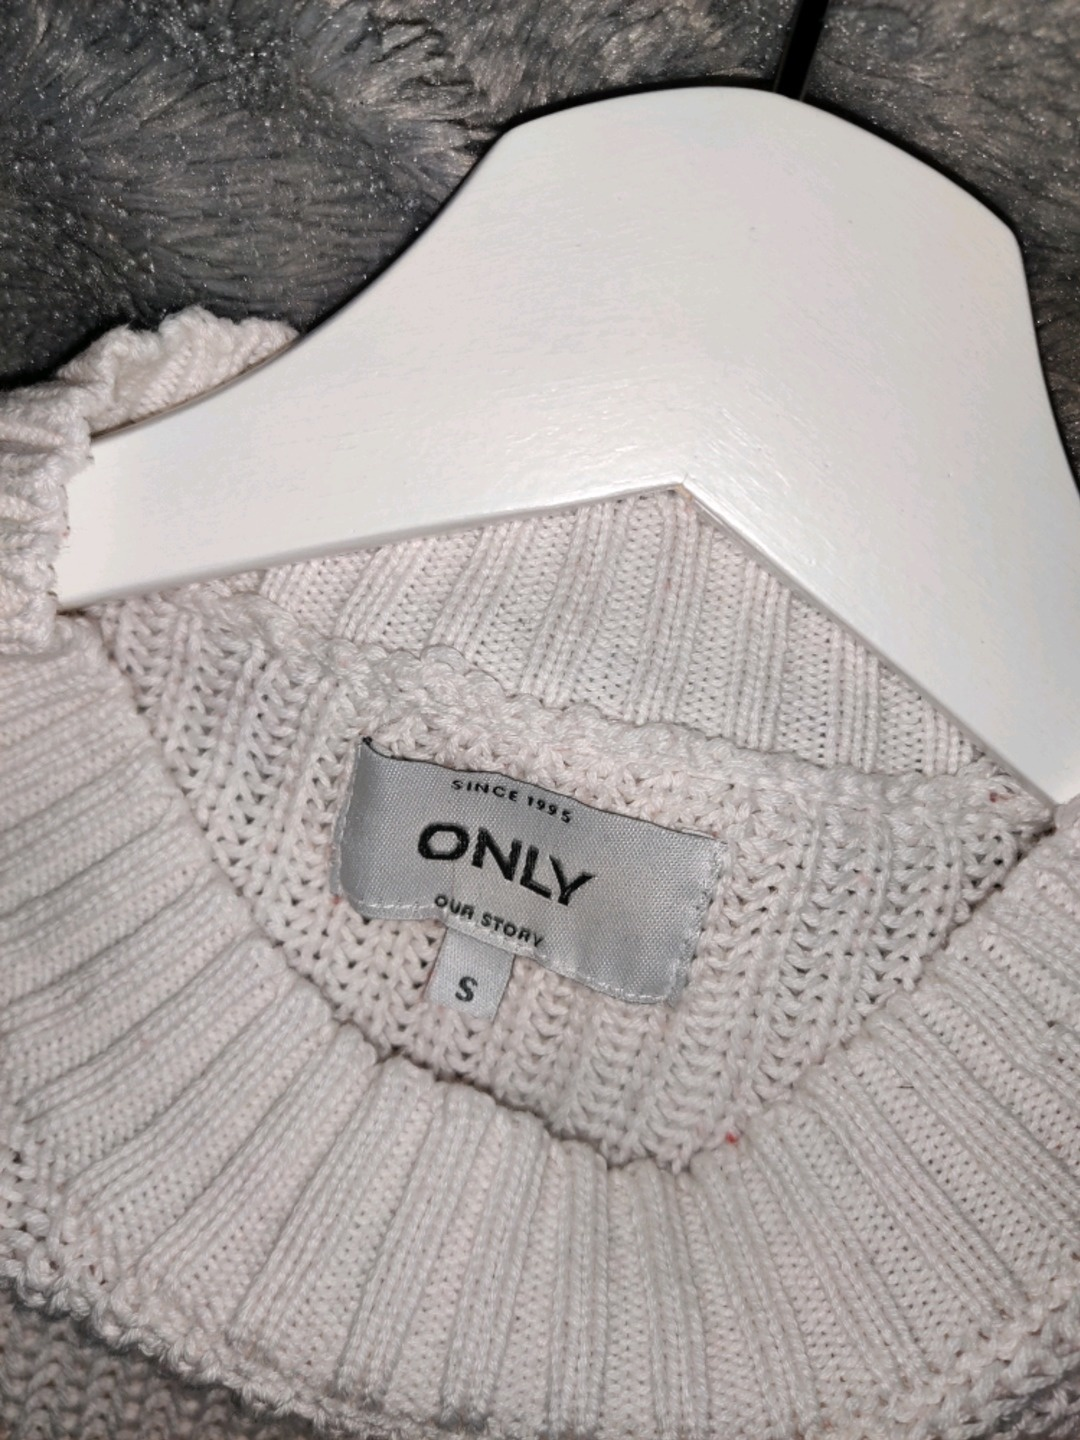 Women's jumpers & cardigans - ONLY OUR STORY photo 2